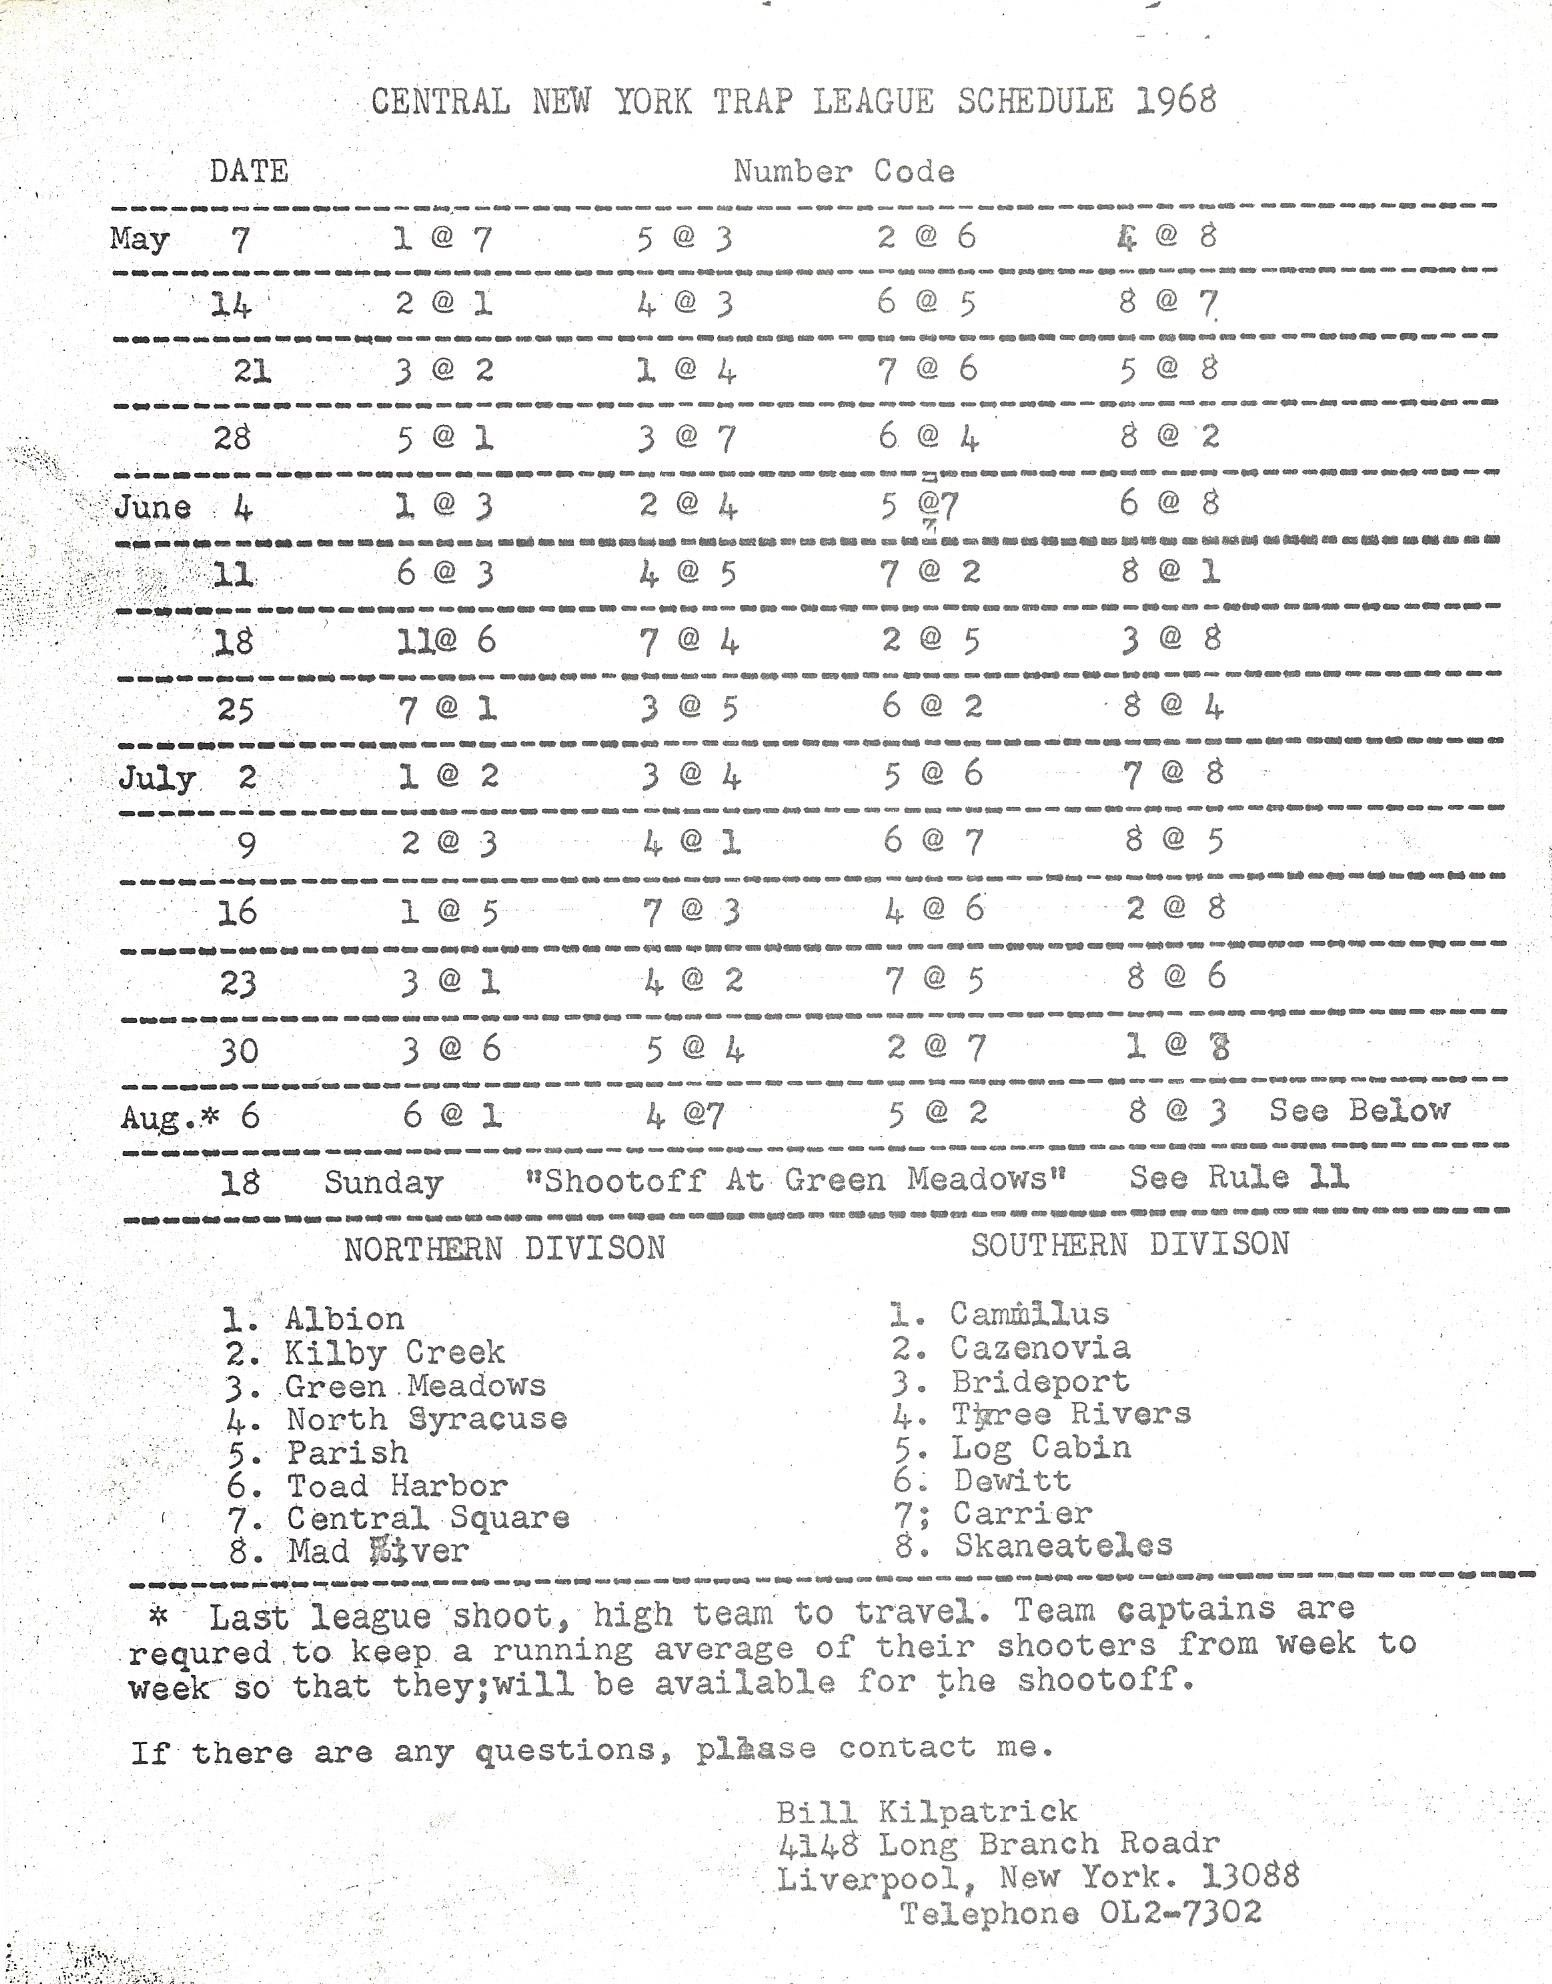 1968 CNYTL Schedule